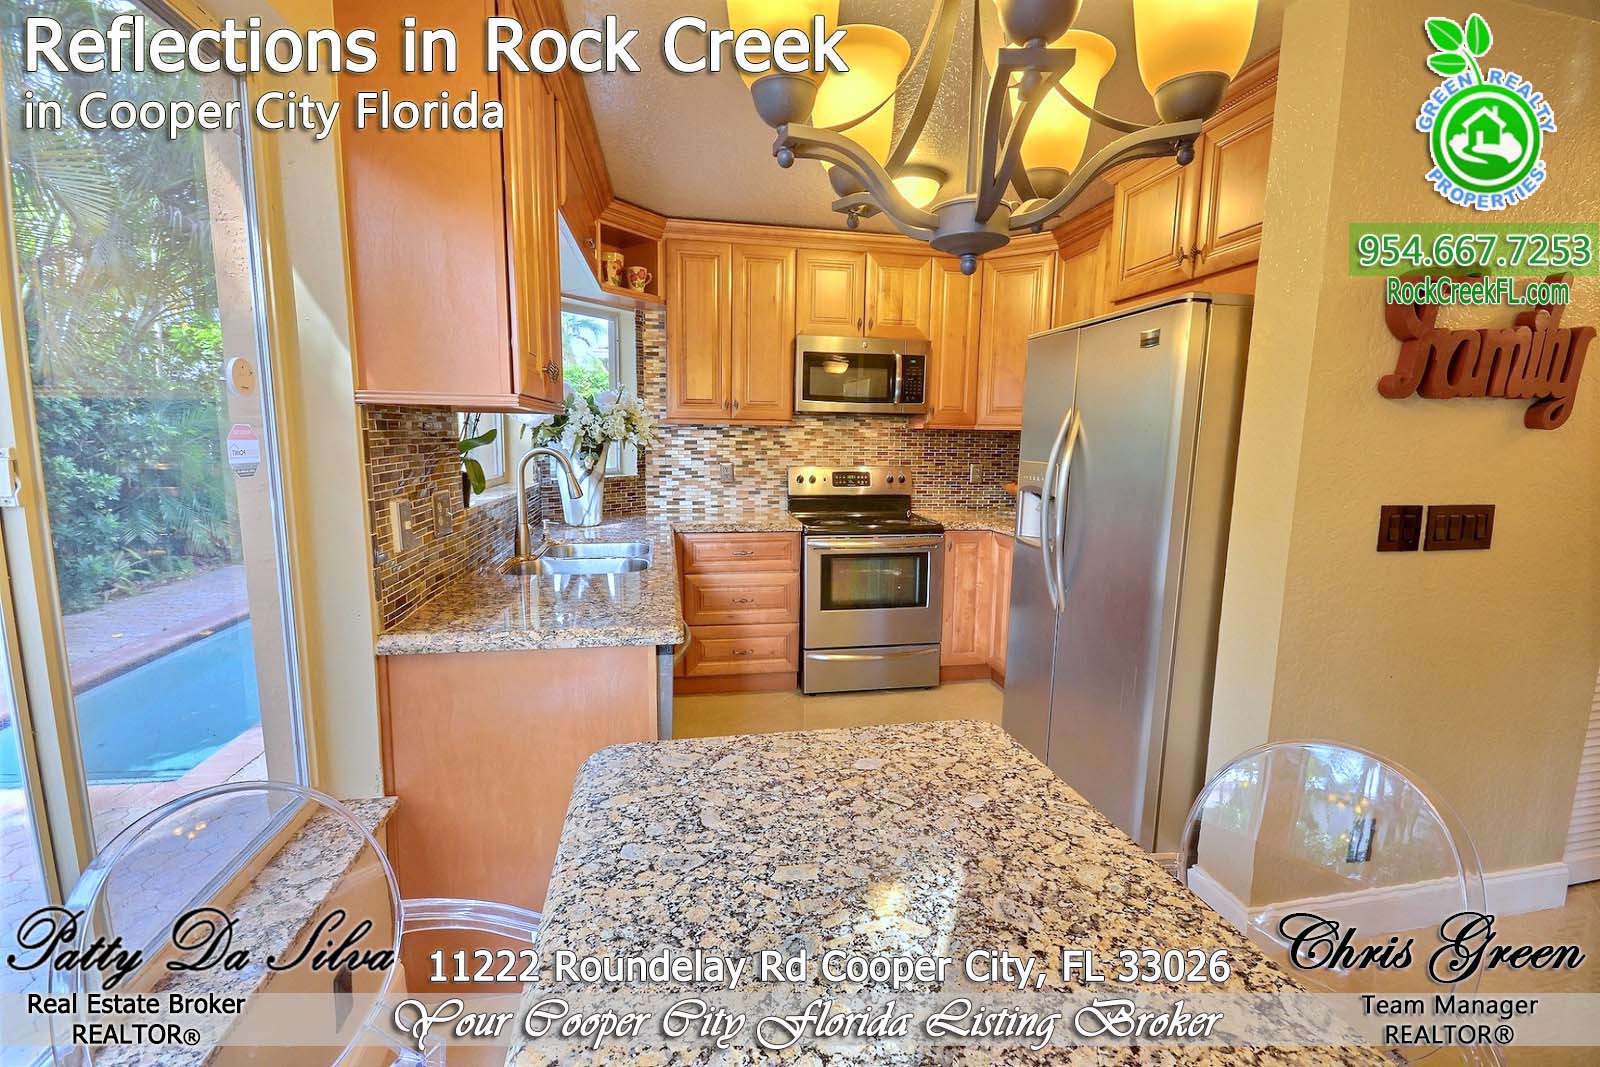 Cooper City Homes For Sale - Reflections in Rock Creek Homes Fo Sale (10)